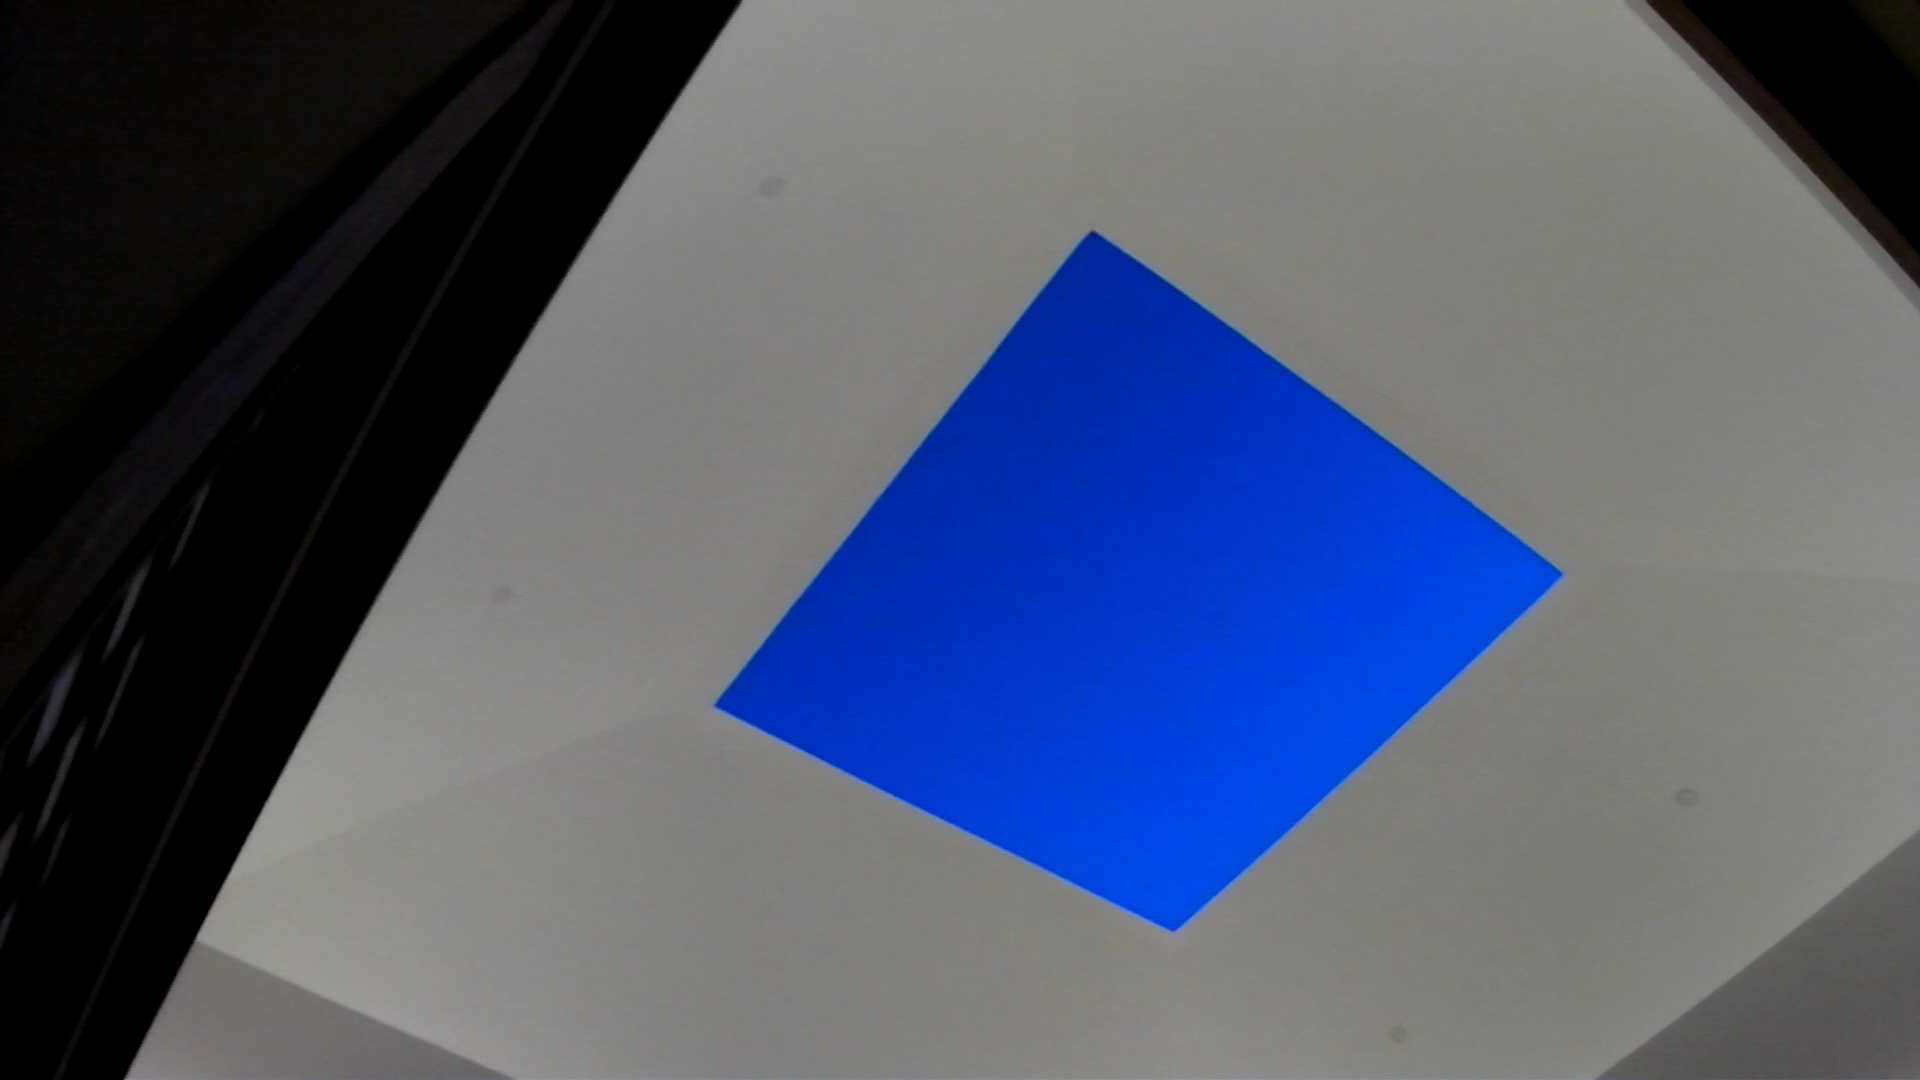 Outside_in_by_James_Turrell_evening_program 2.jpg